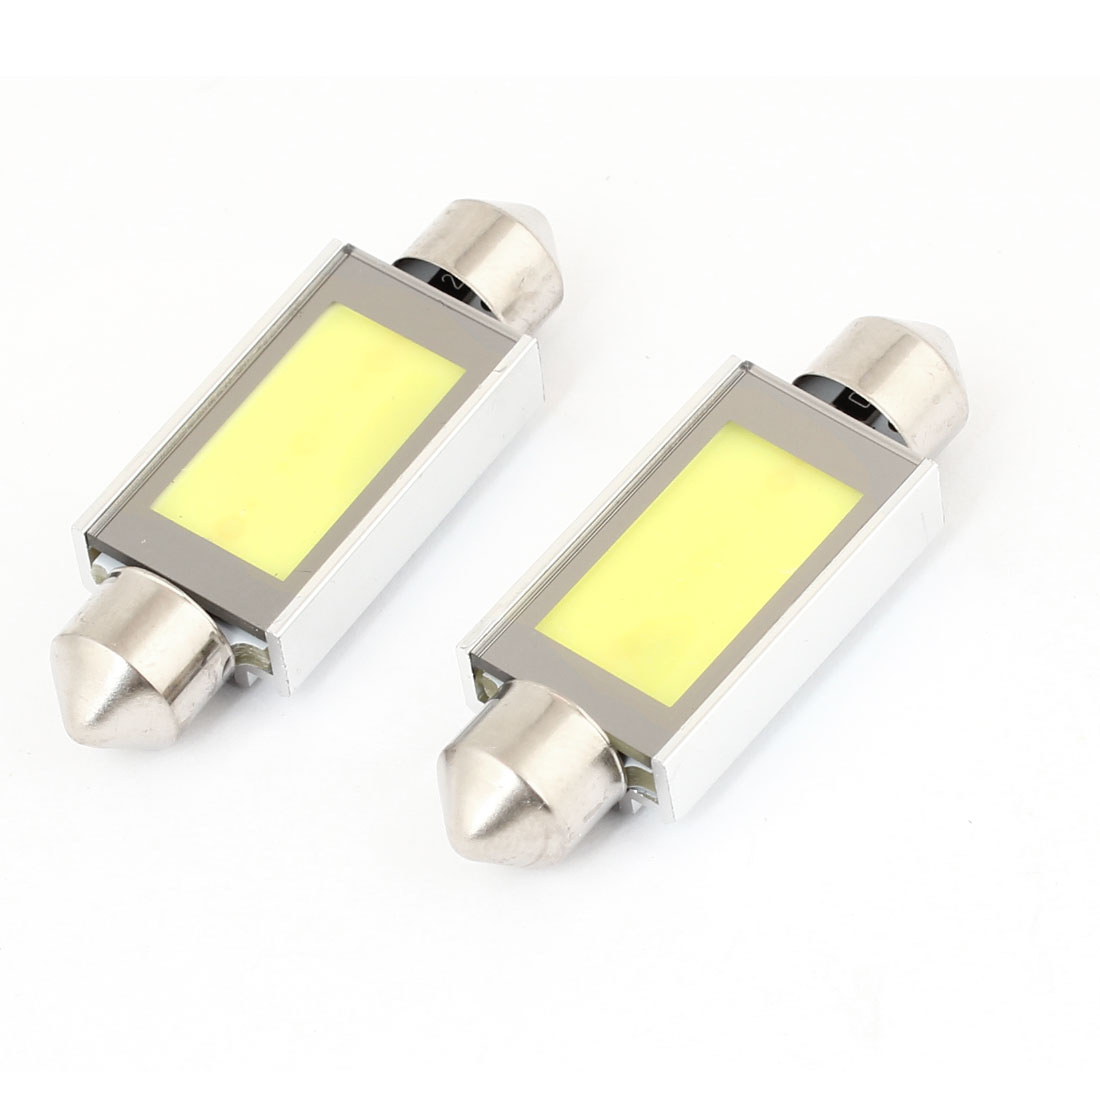 2pcs Car 3 White SMD LED Heat Sink Error Free Festoon Dome Map Light 3W 41mm